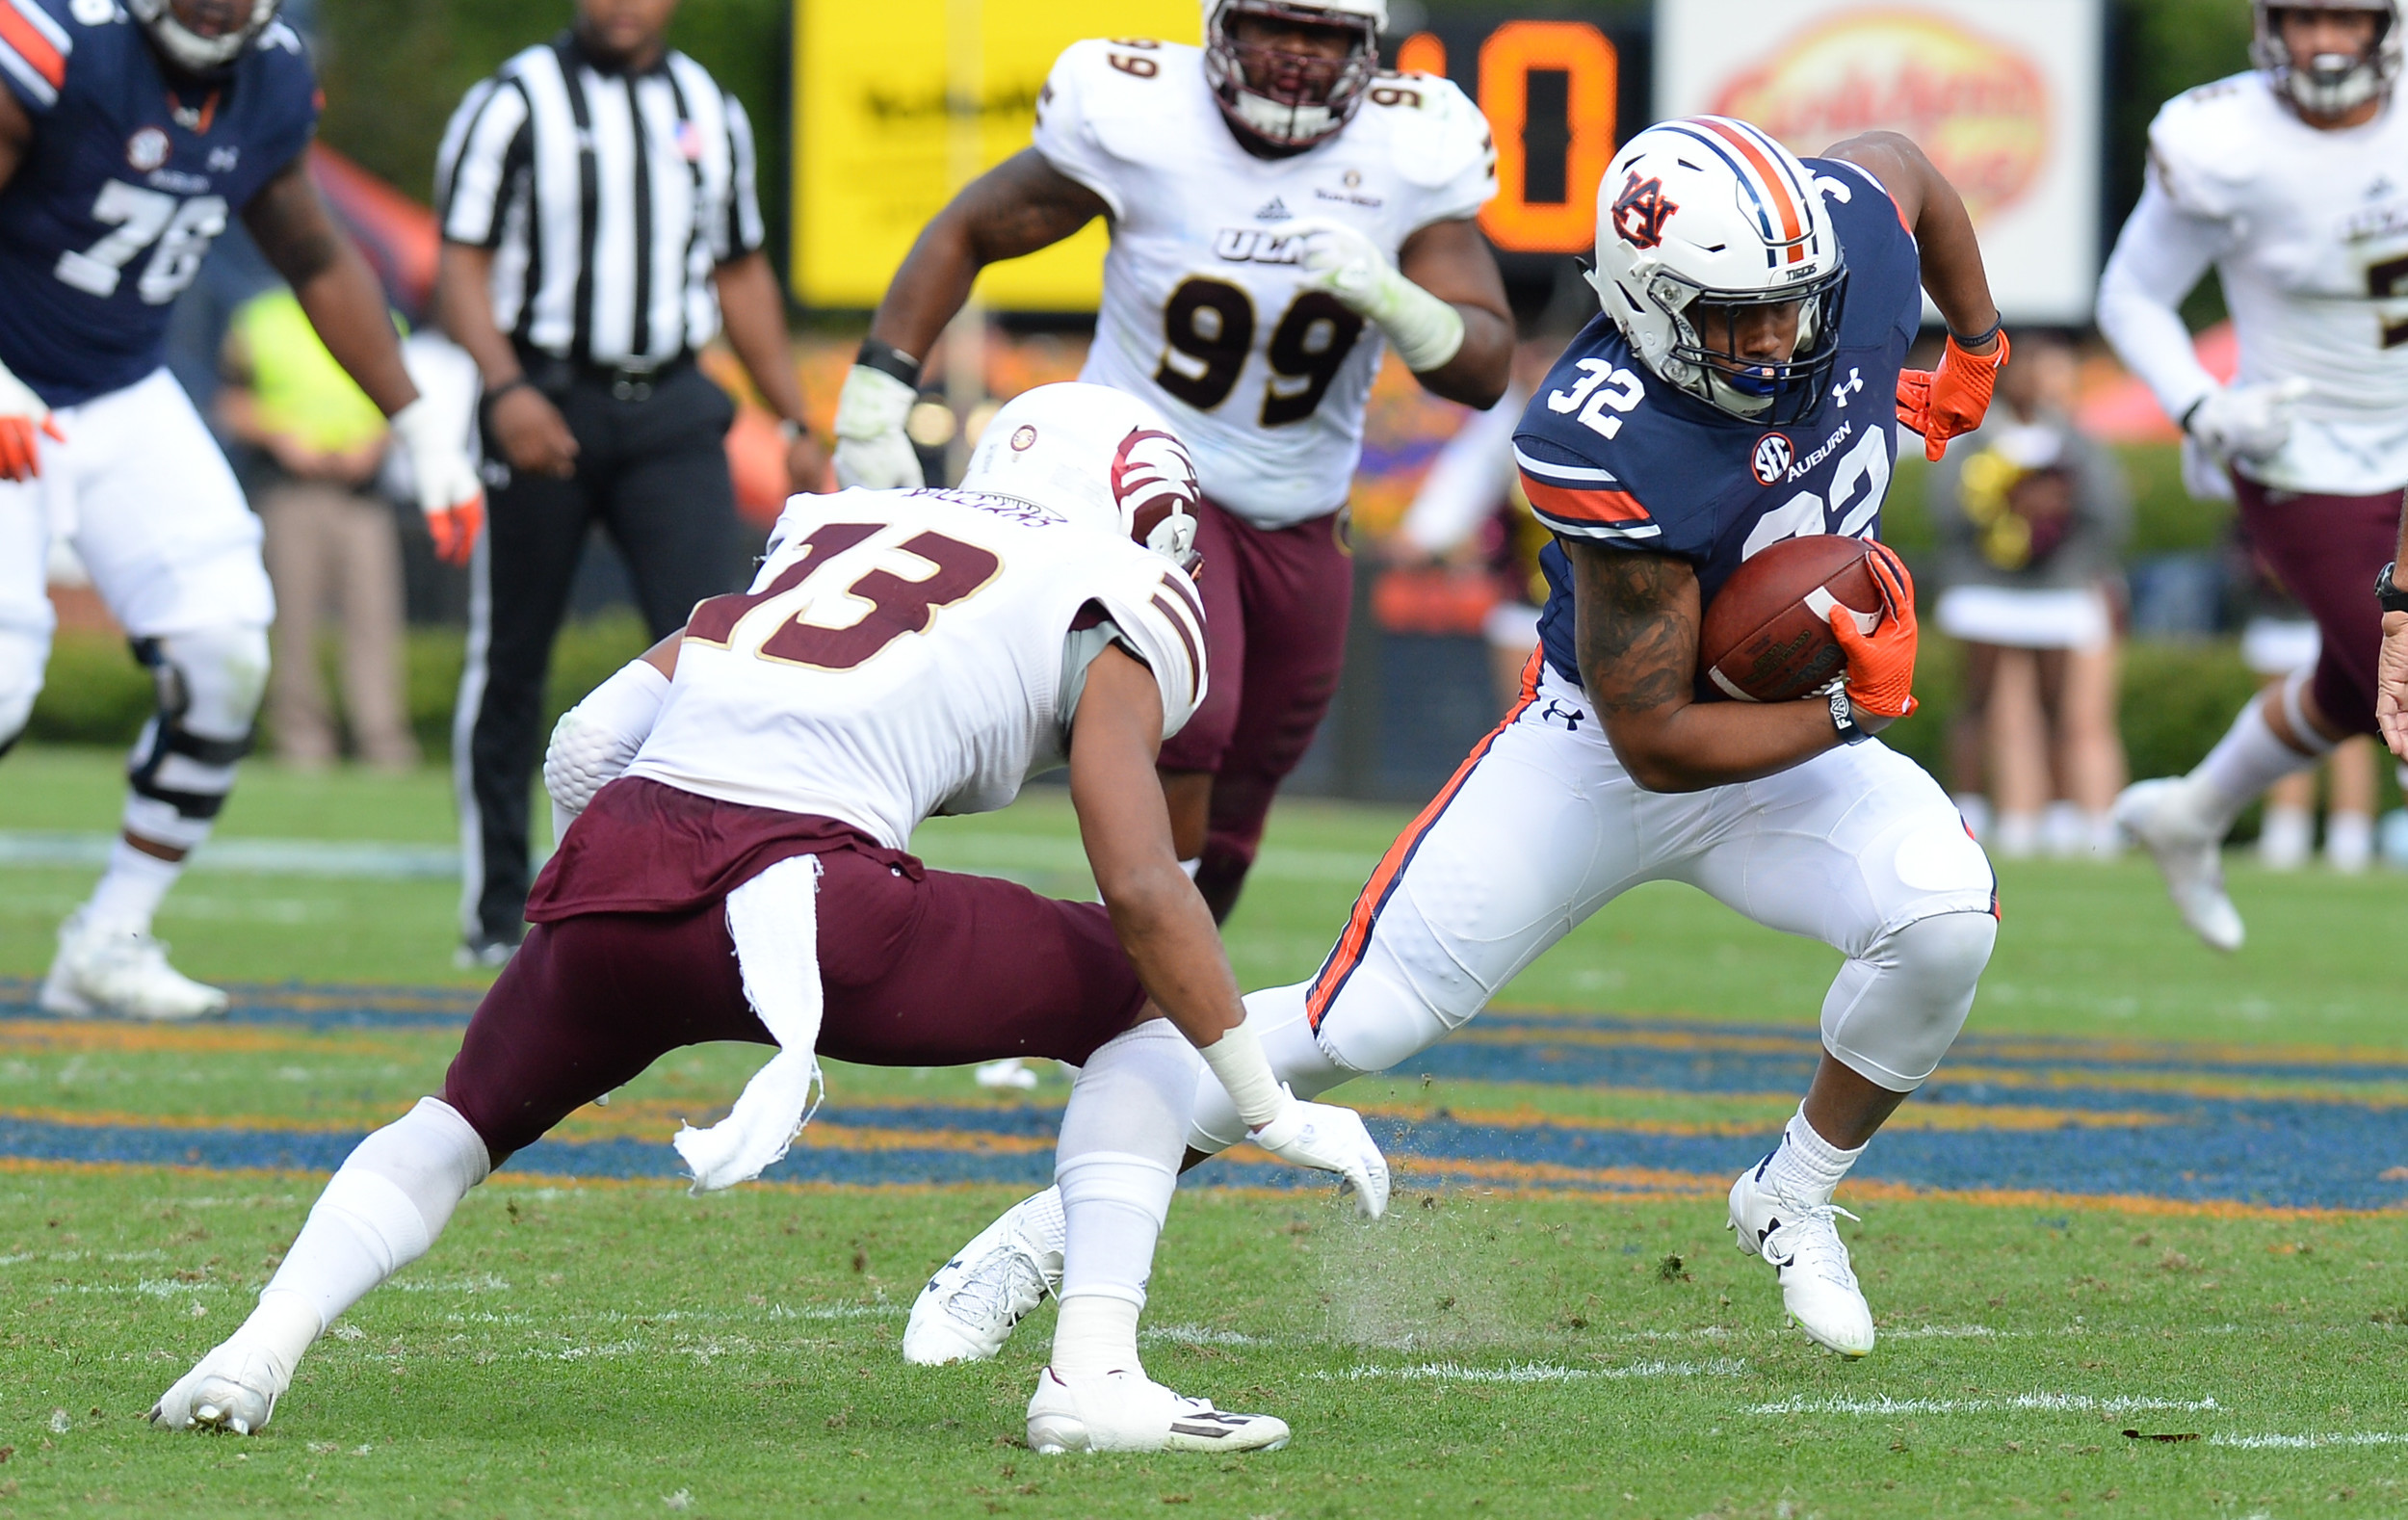 Louisiana Monroe Warhawks cornerback Rhoy Williams (13) looks to tackle Auburn Tigers running back Malik Miller (32) during the second half of Saturday's game, at Jordan-Hare Stadium.